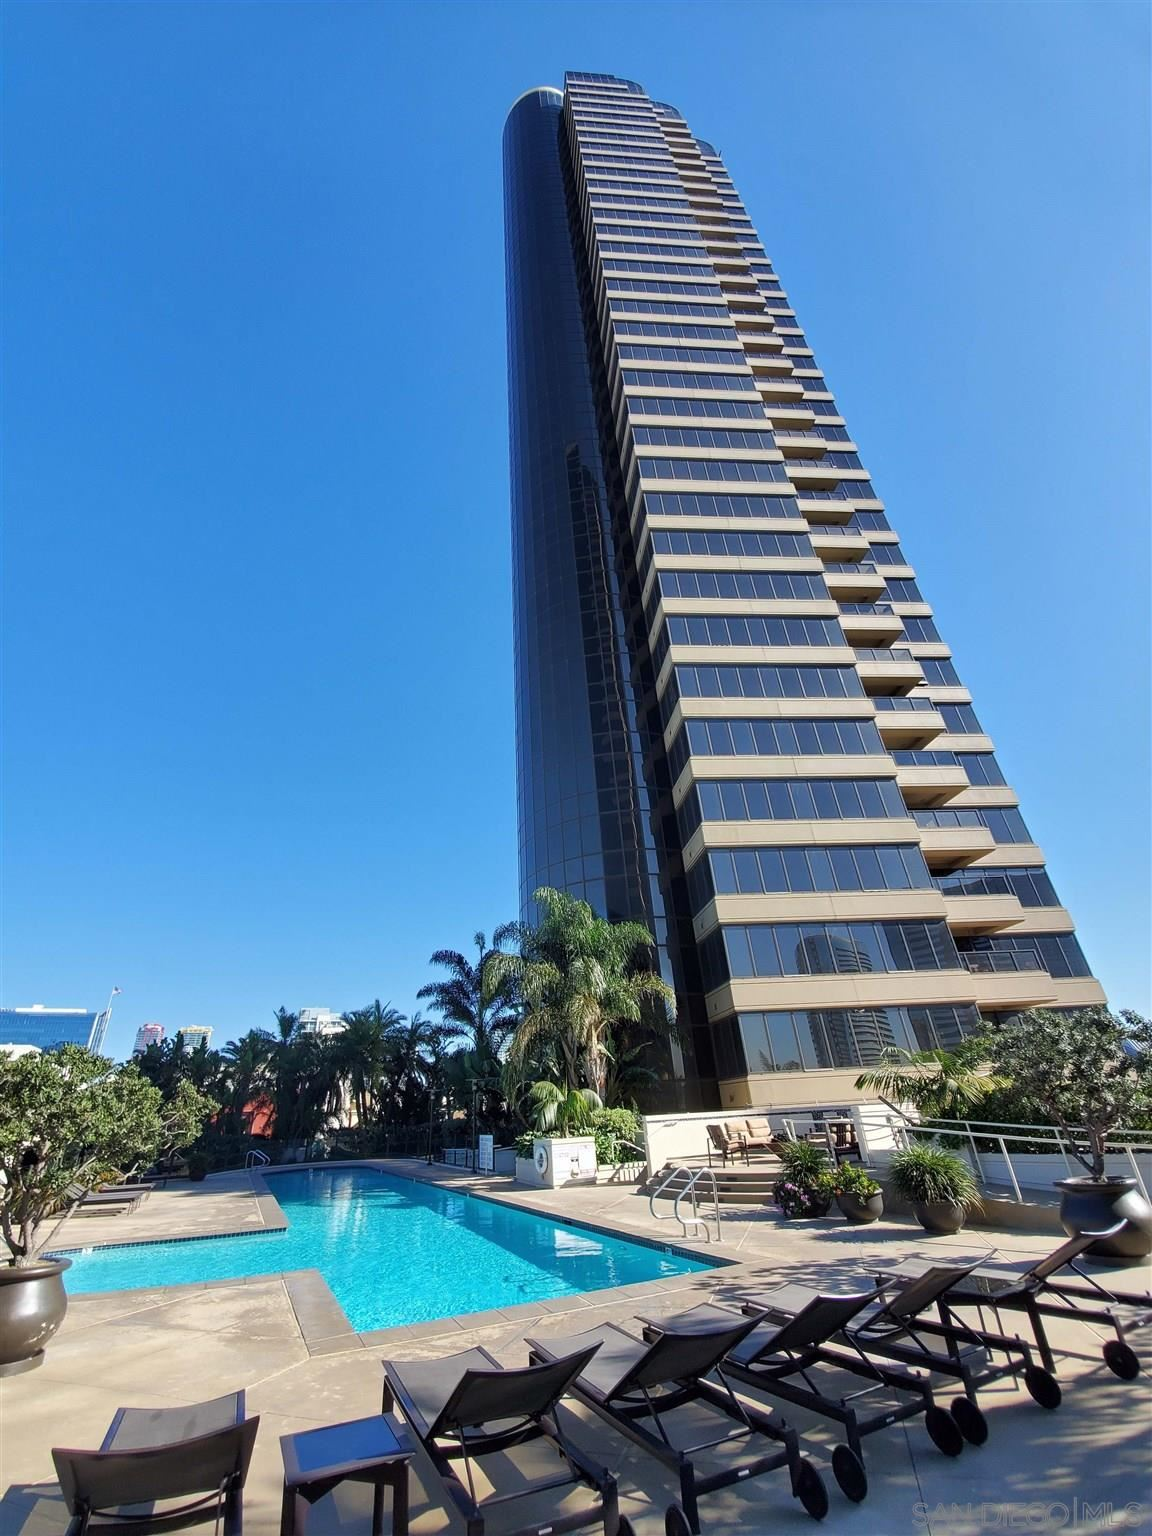 Photo for 200 Harbor Dr #1101, San Diego, CA 92101 (MLS # 210006659)